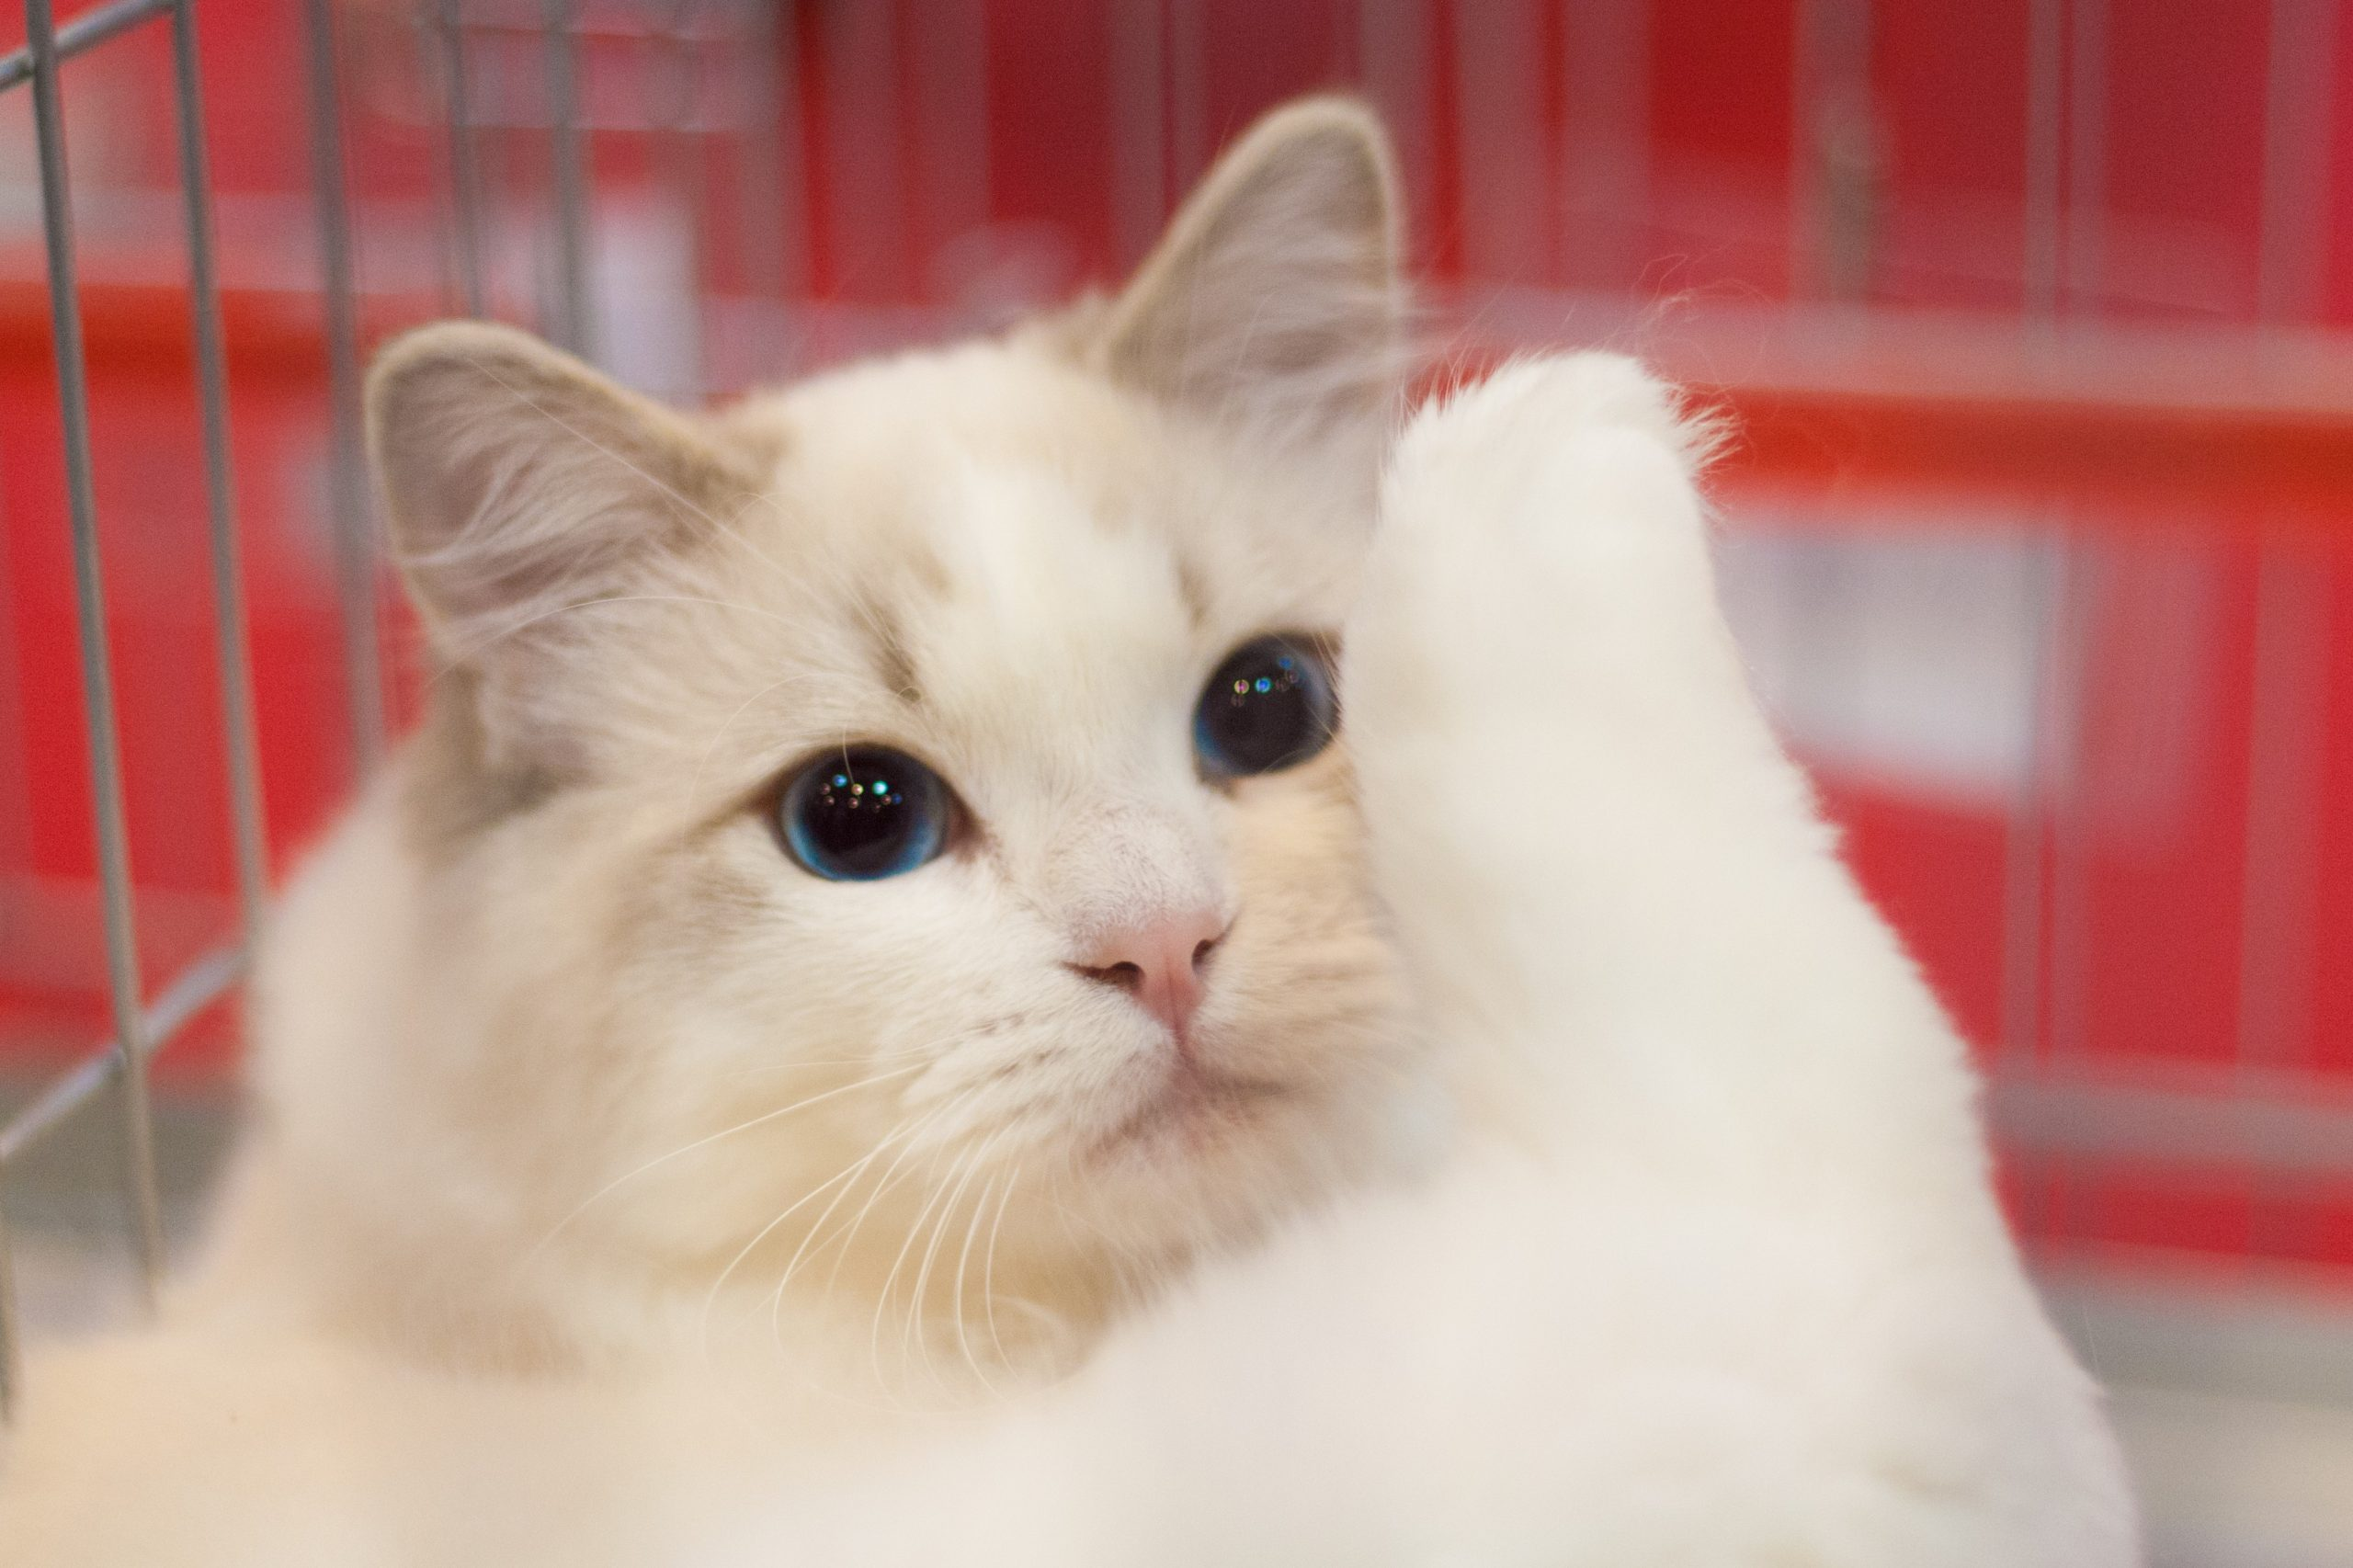 A collection of animals pictures with the most cute cats.